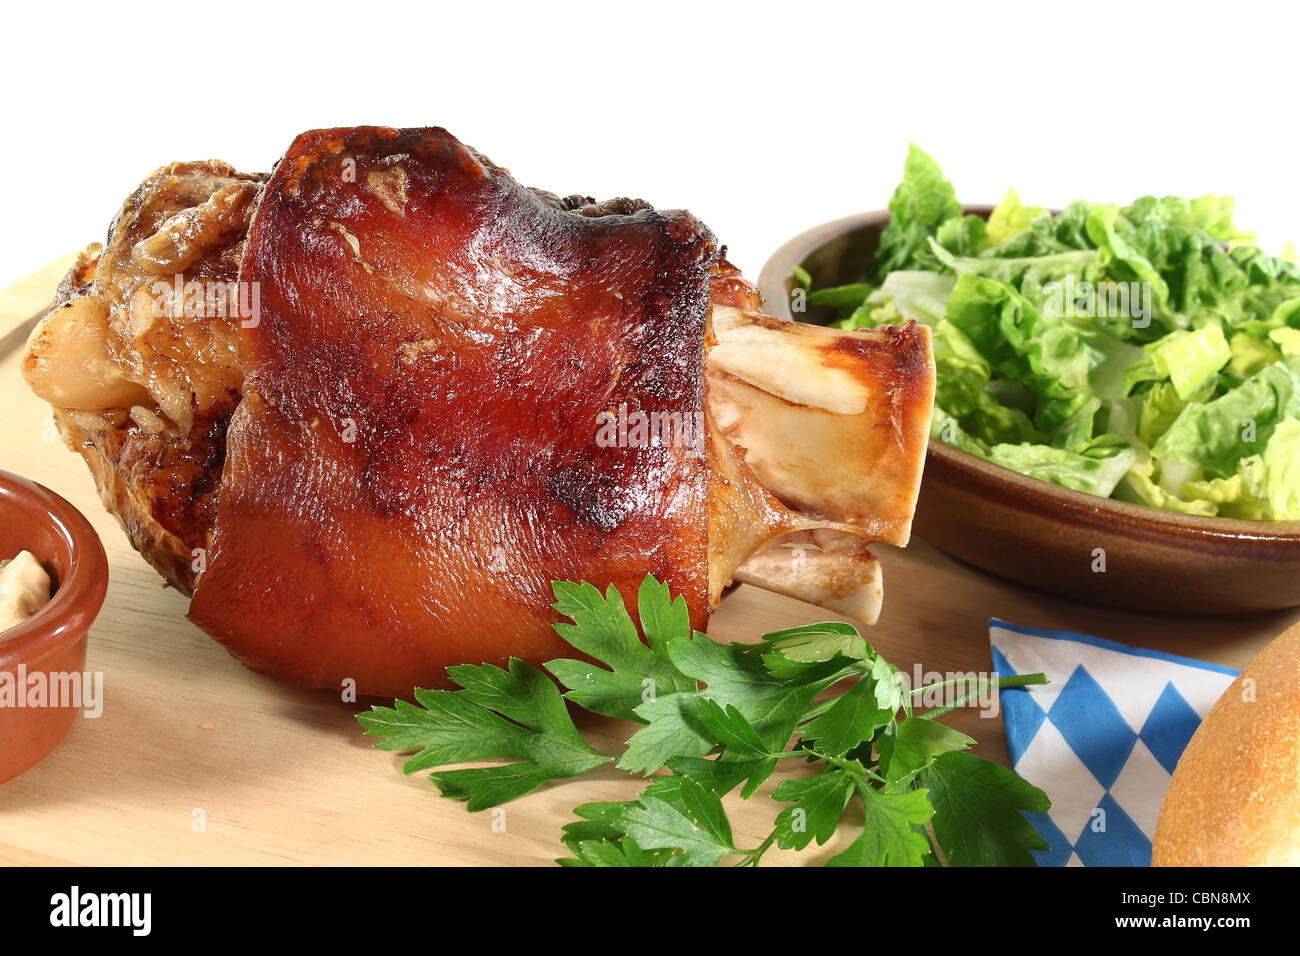 Pork hock with mustard, lettuce and parsley on a board - Stock Image